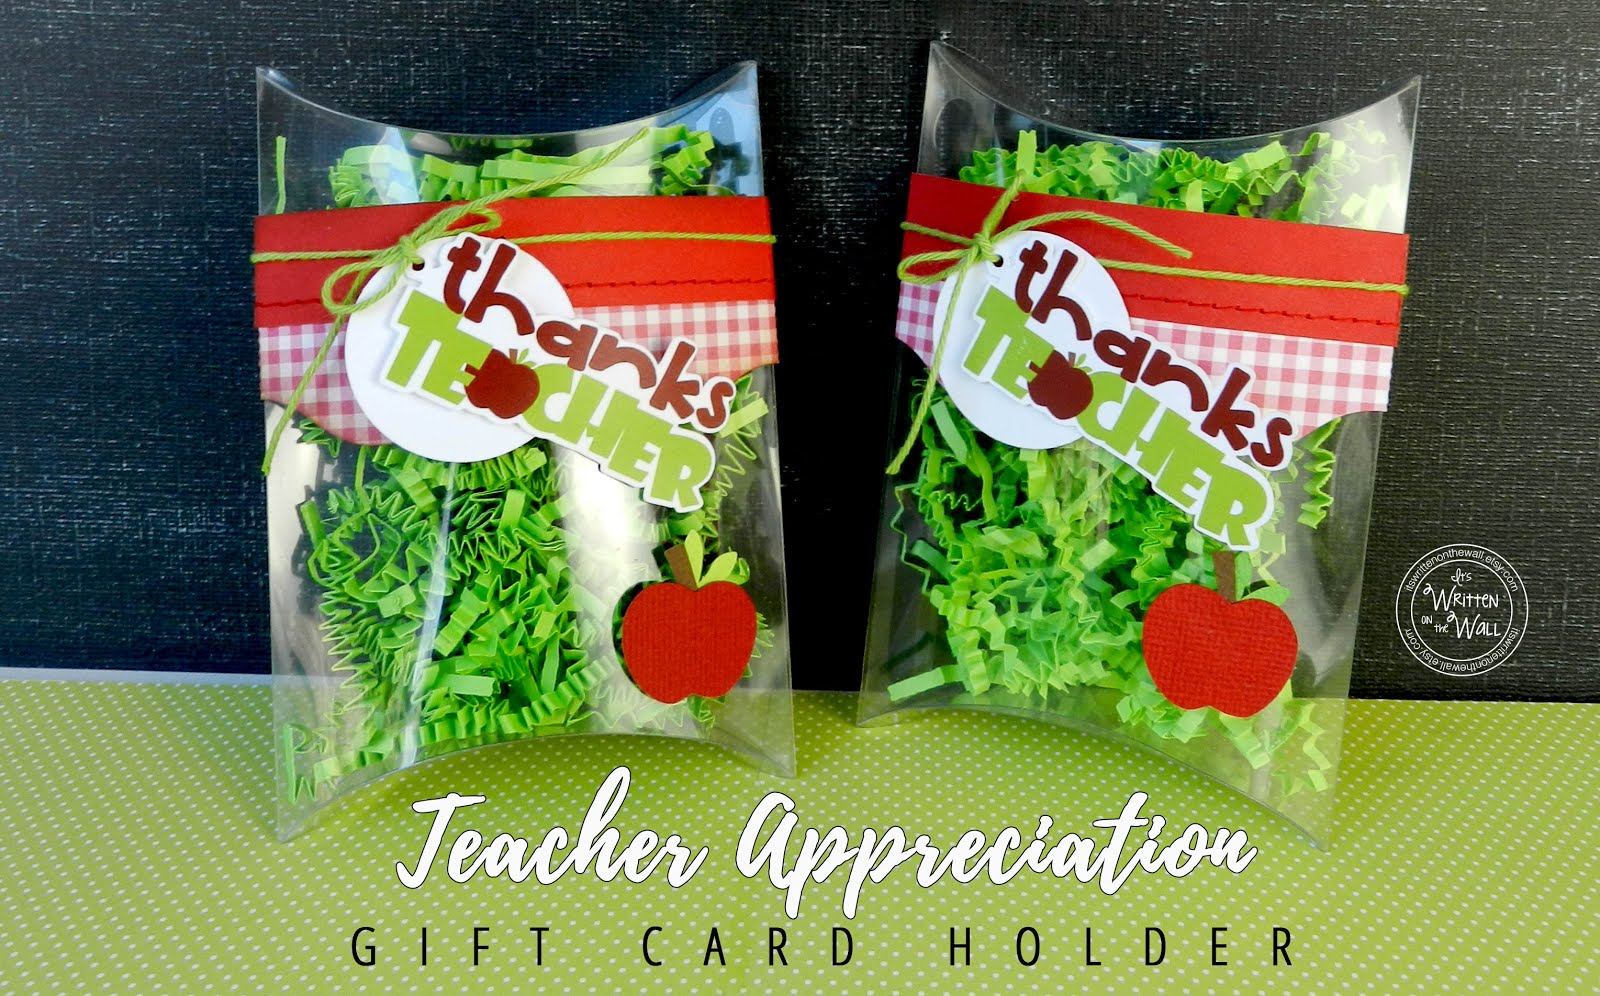 Teacher Appreciation Gift Card Holder-Pillow Box